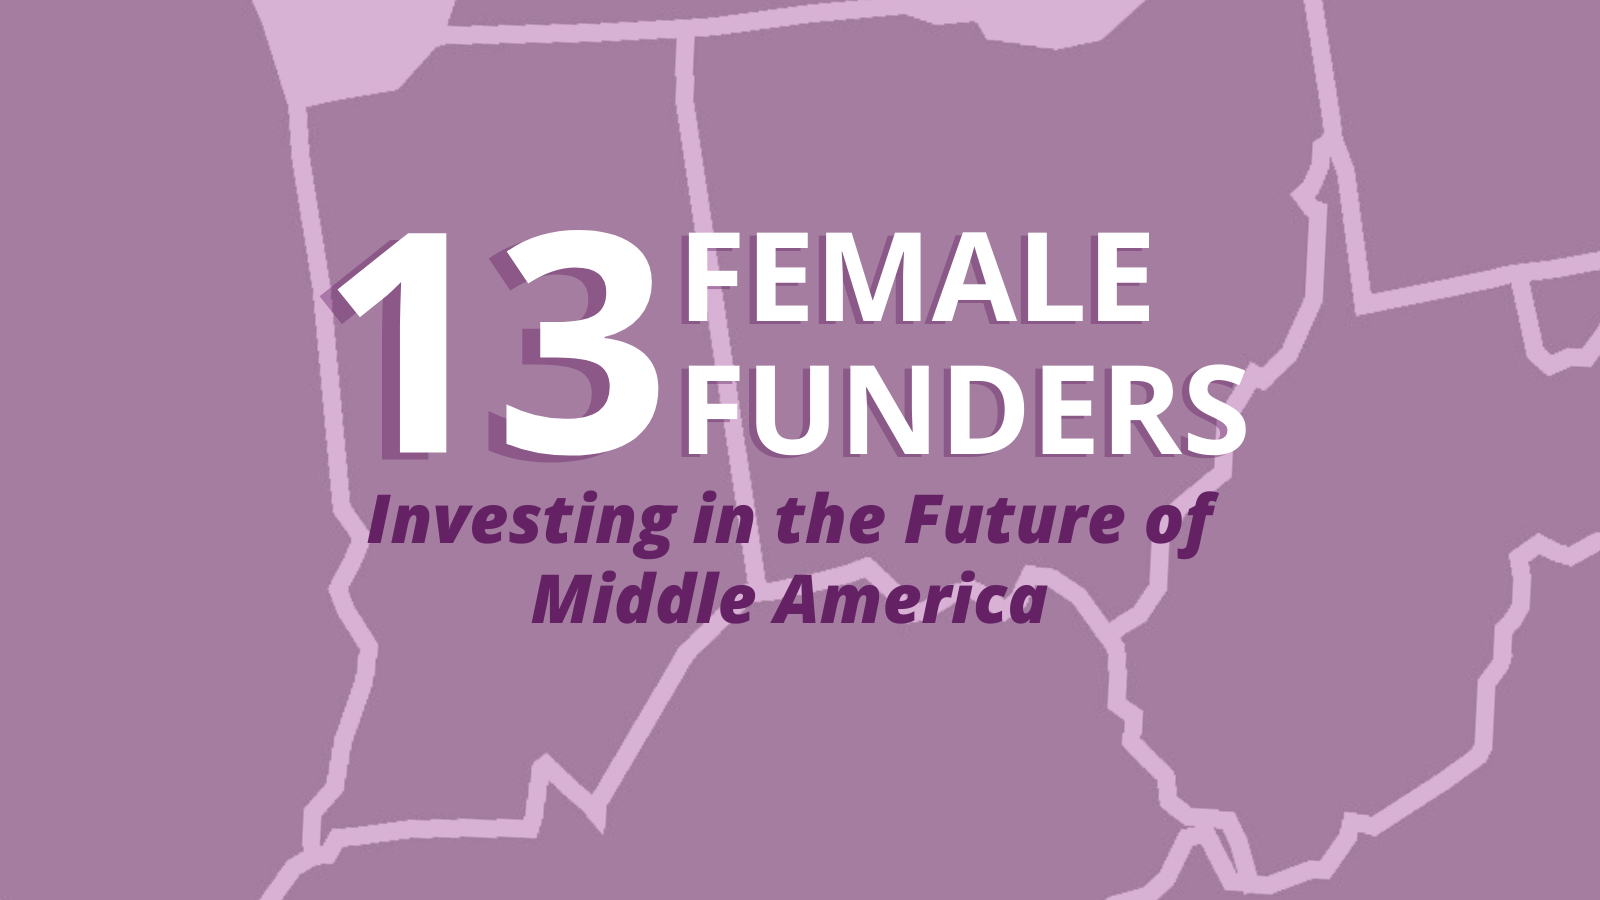 13 Female Funders Investing in the Future of Middle America